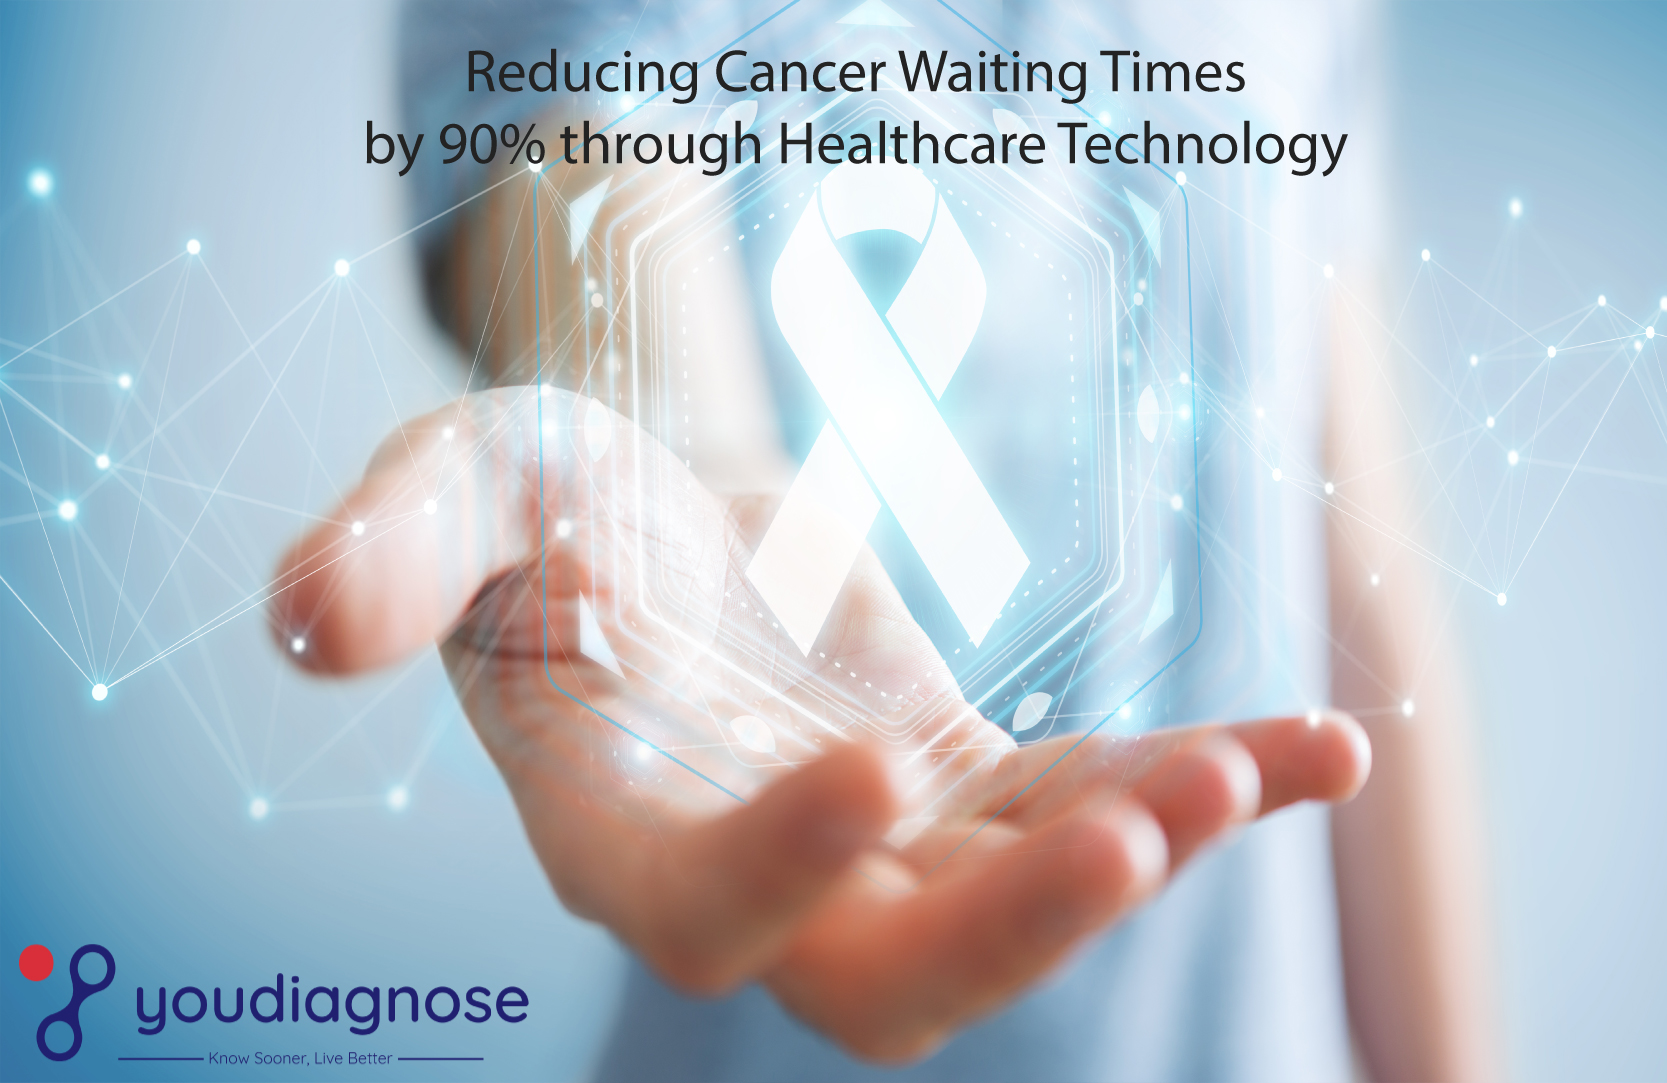 Reducing Cancer Diagnostic Waiting Times by 90% through Disruptive Healthcare Technology